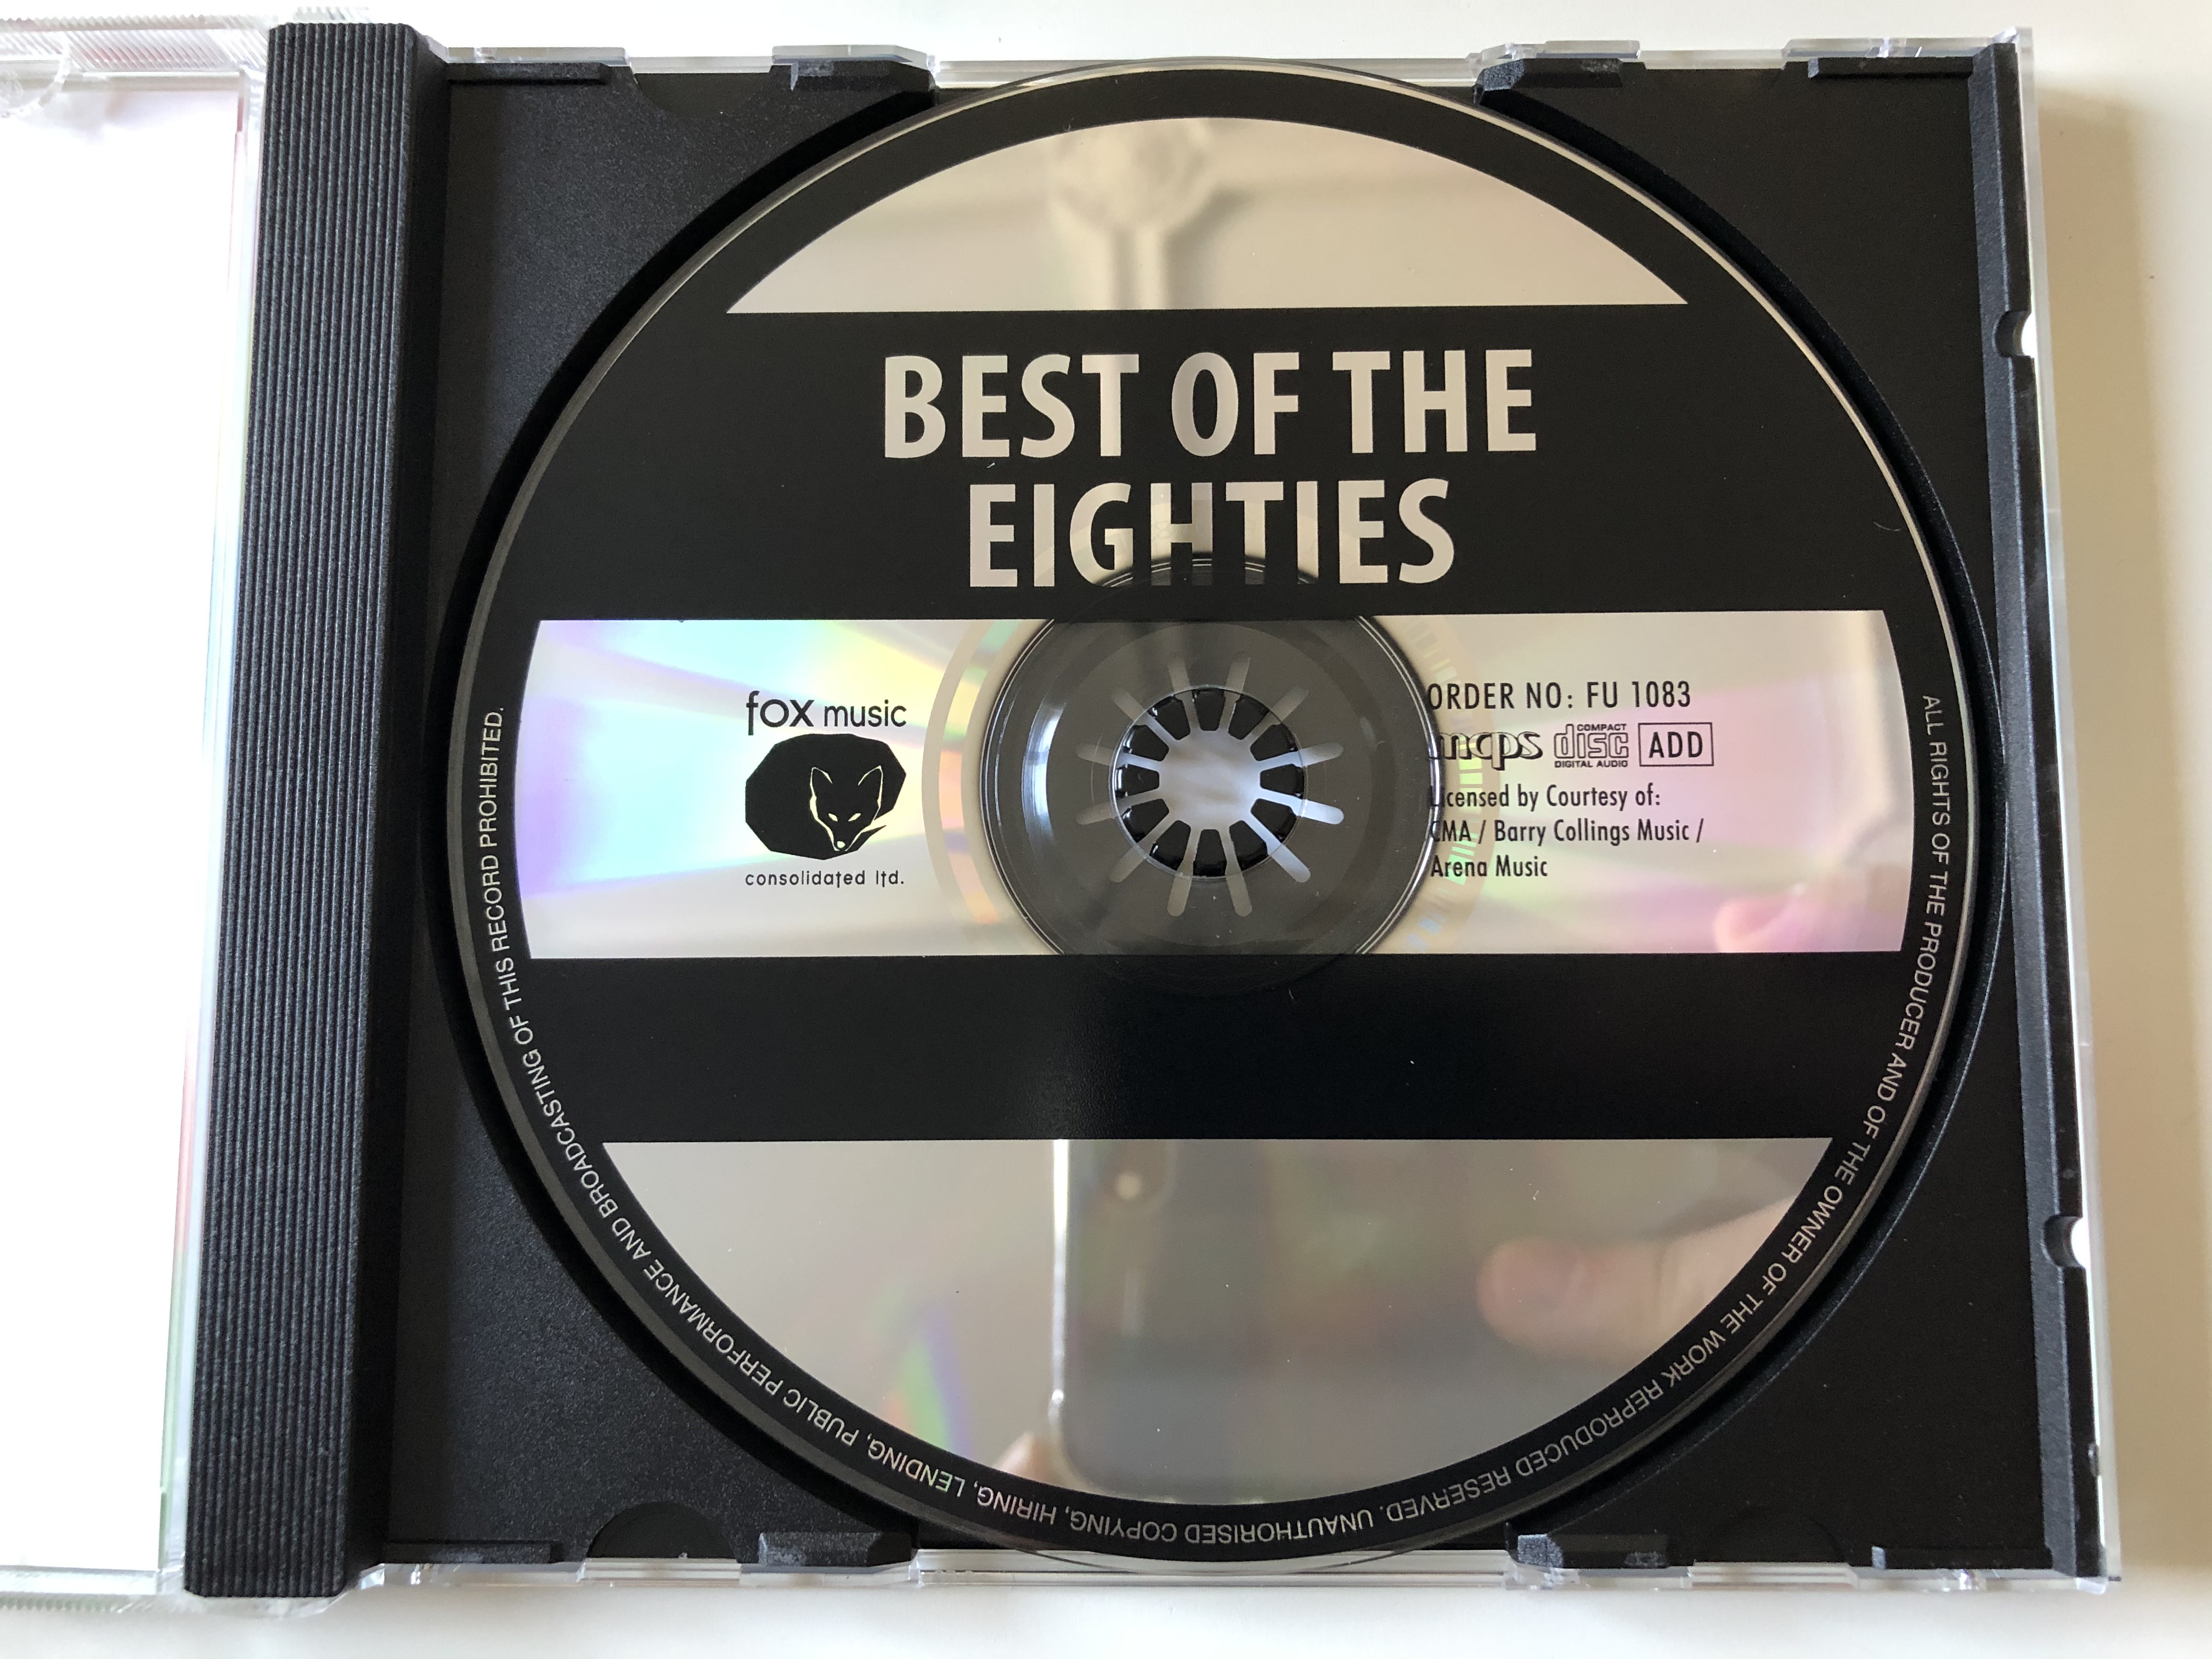 best-of-the-eighties-sister-sledge-rose-royce-george-mccrae-tams-edwin-starr-many-more-fox-music-consolidated-ltd.-audio-cd-fu-1083-2-.jpg